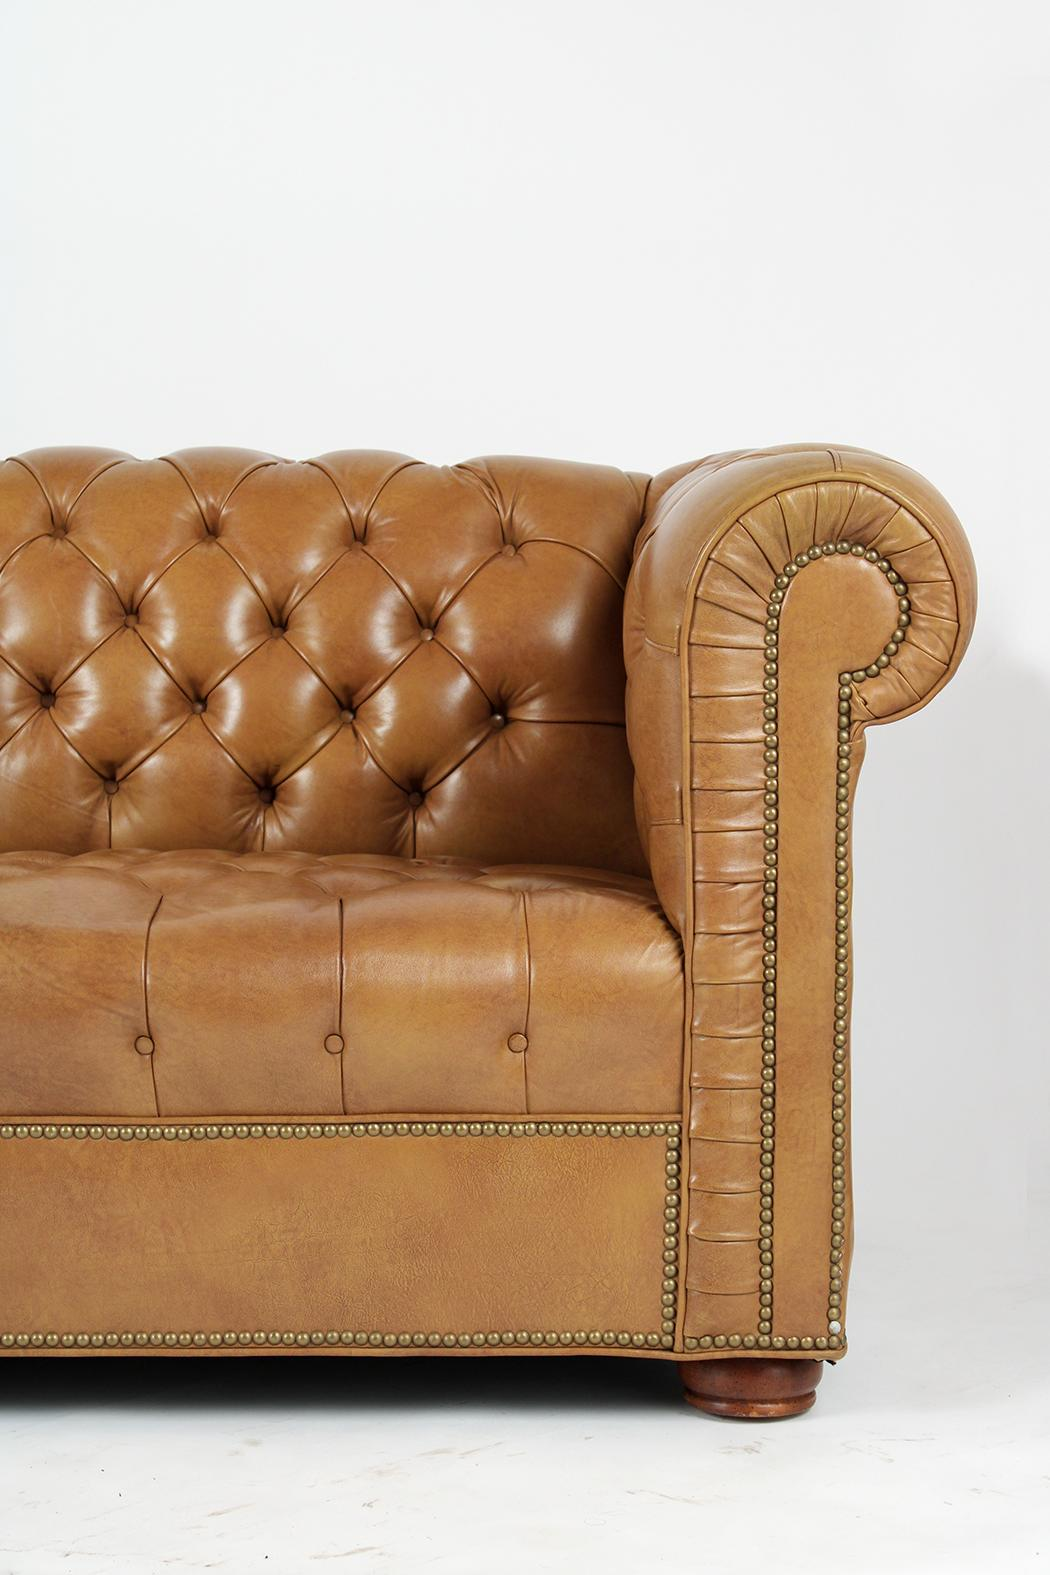 Vintage Traditional Chesterfield Leather Sofa